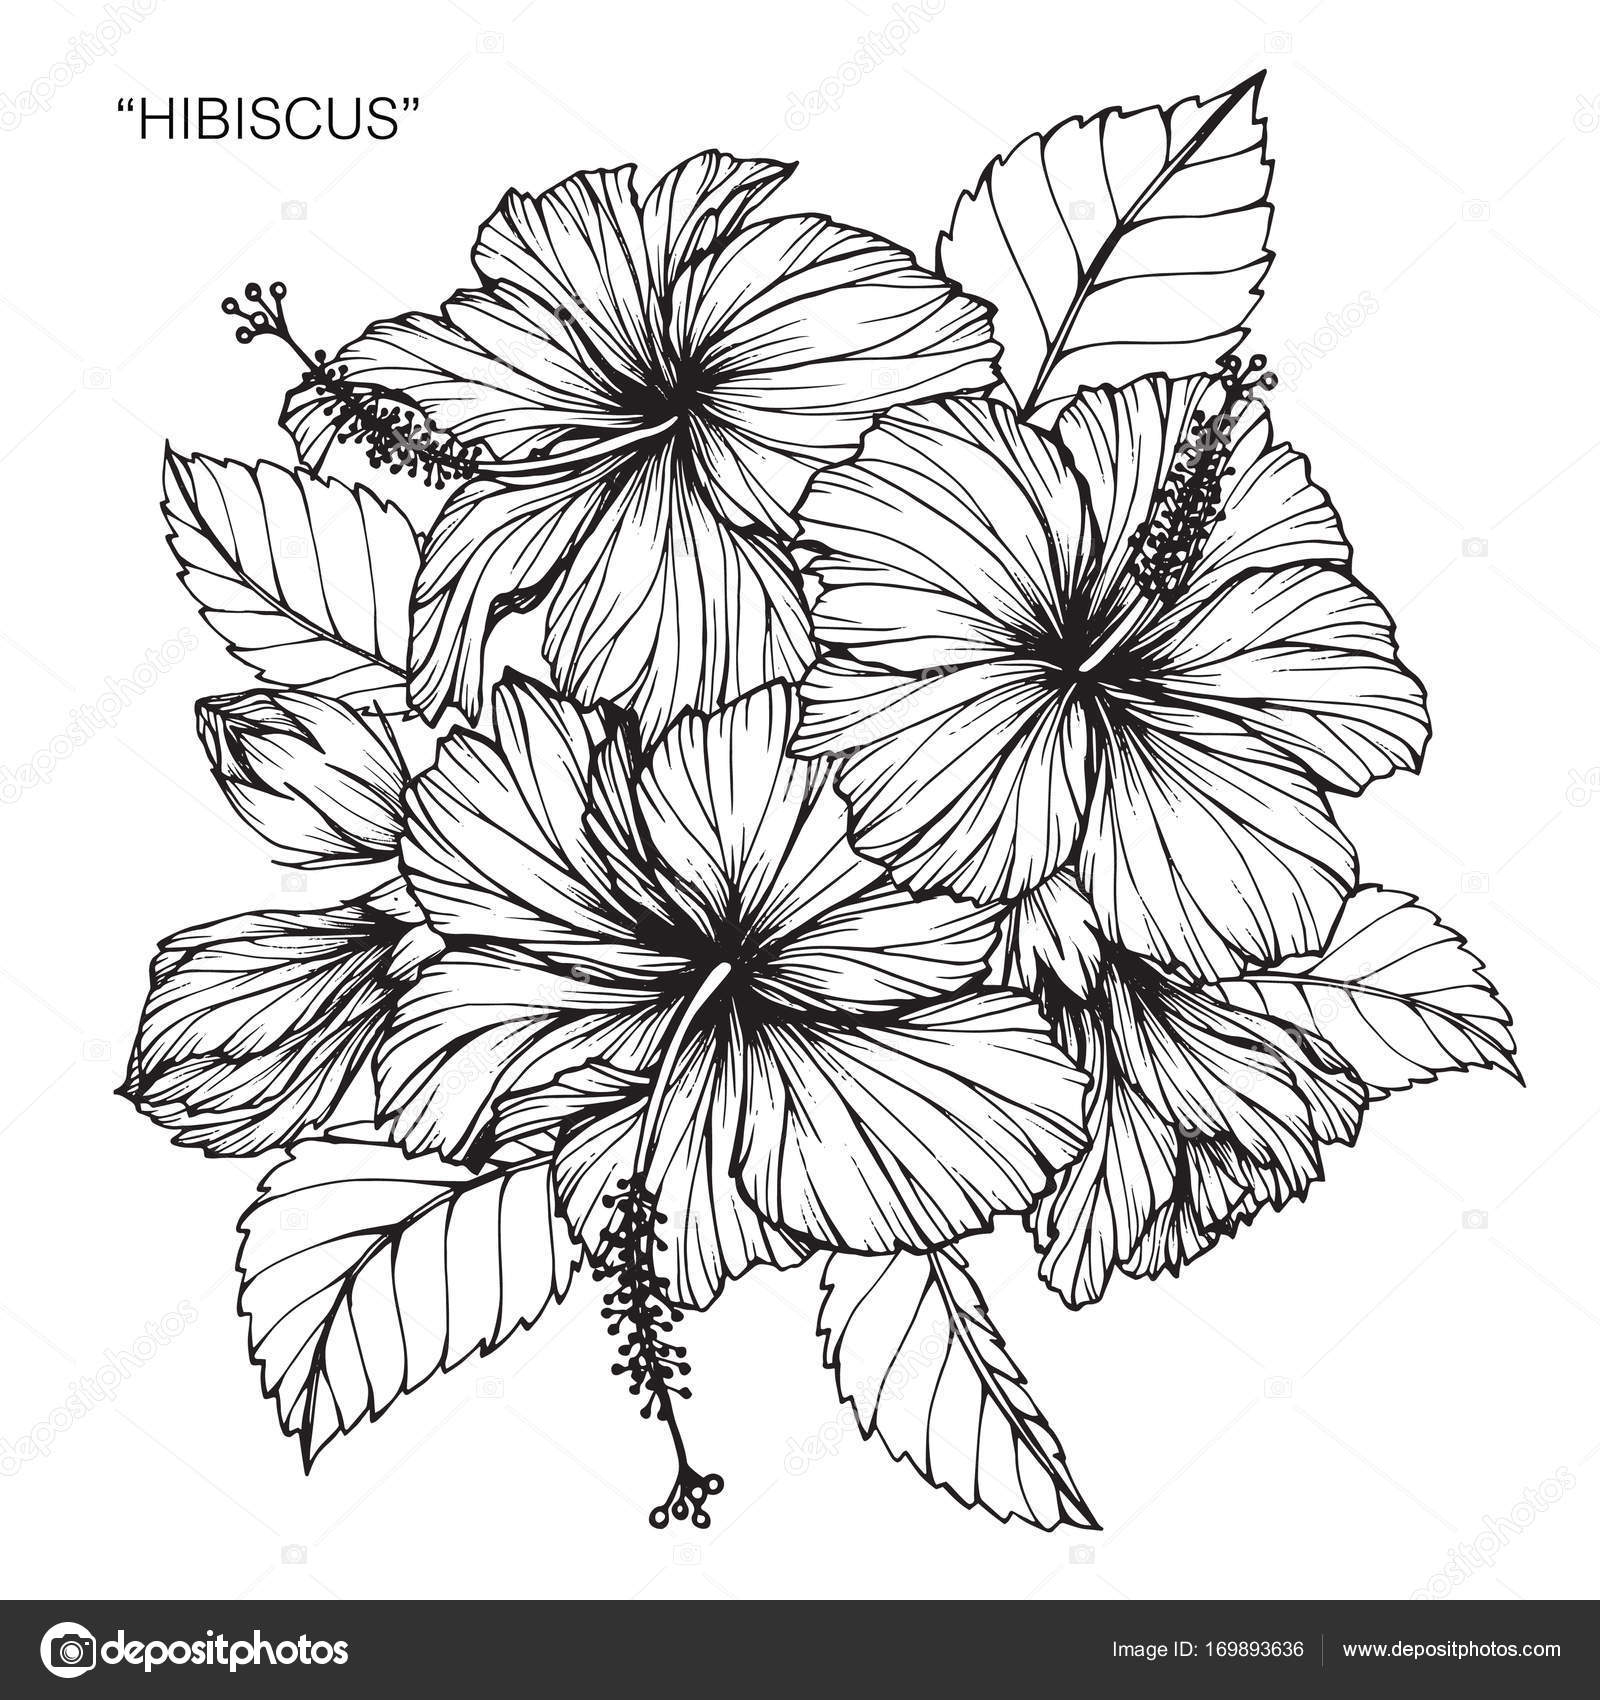 Hibiscus flower drawing sketch black white line art stock vector hibiscus flower drawing sketch black white line art stock vector thecheapjerseys Choice Image